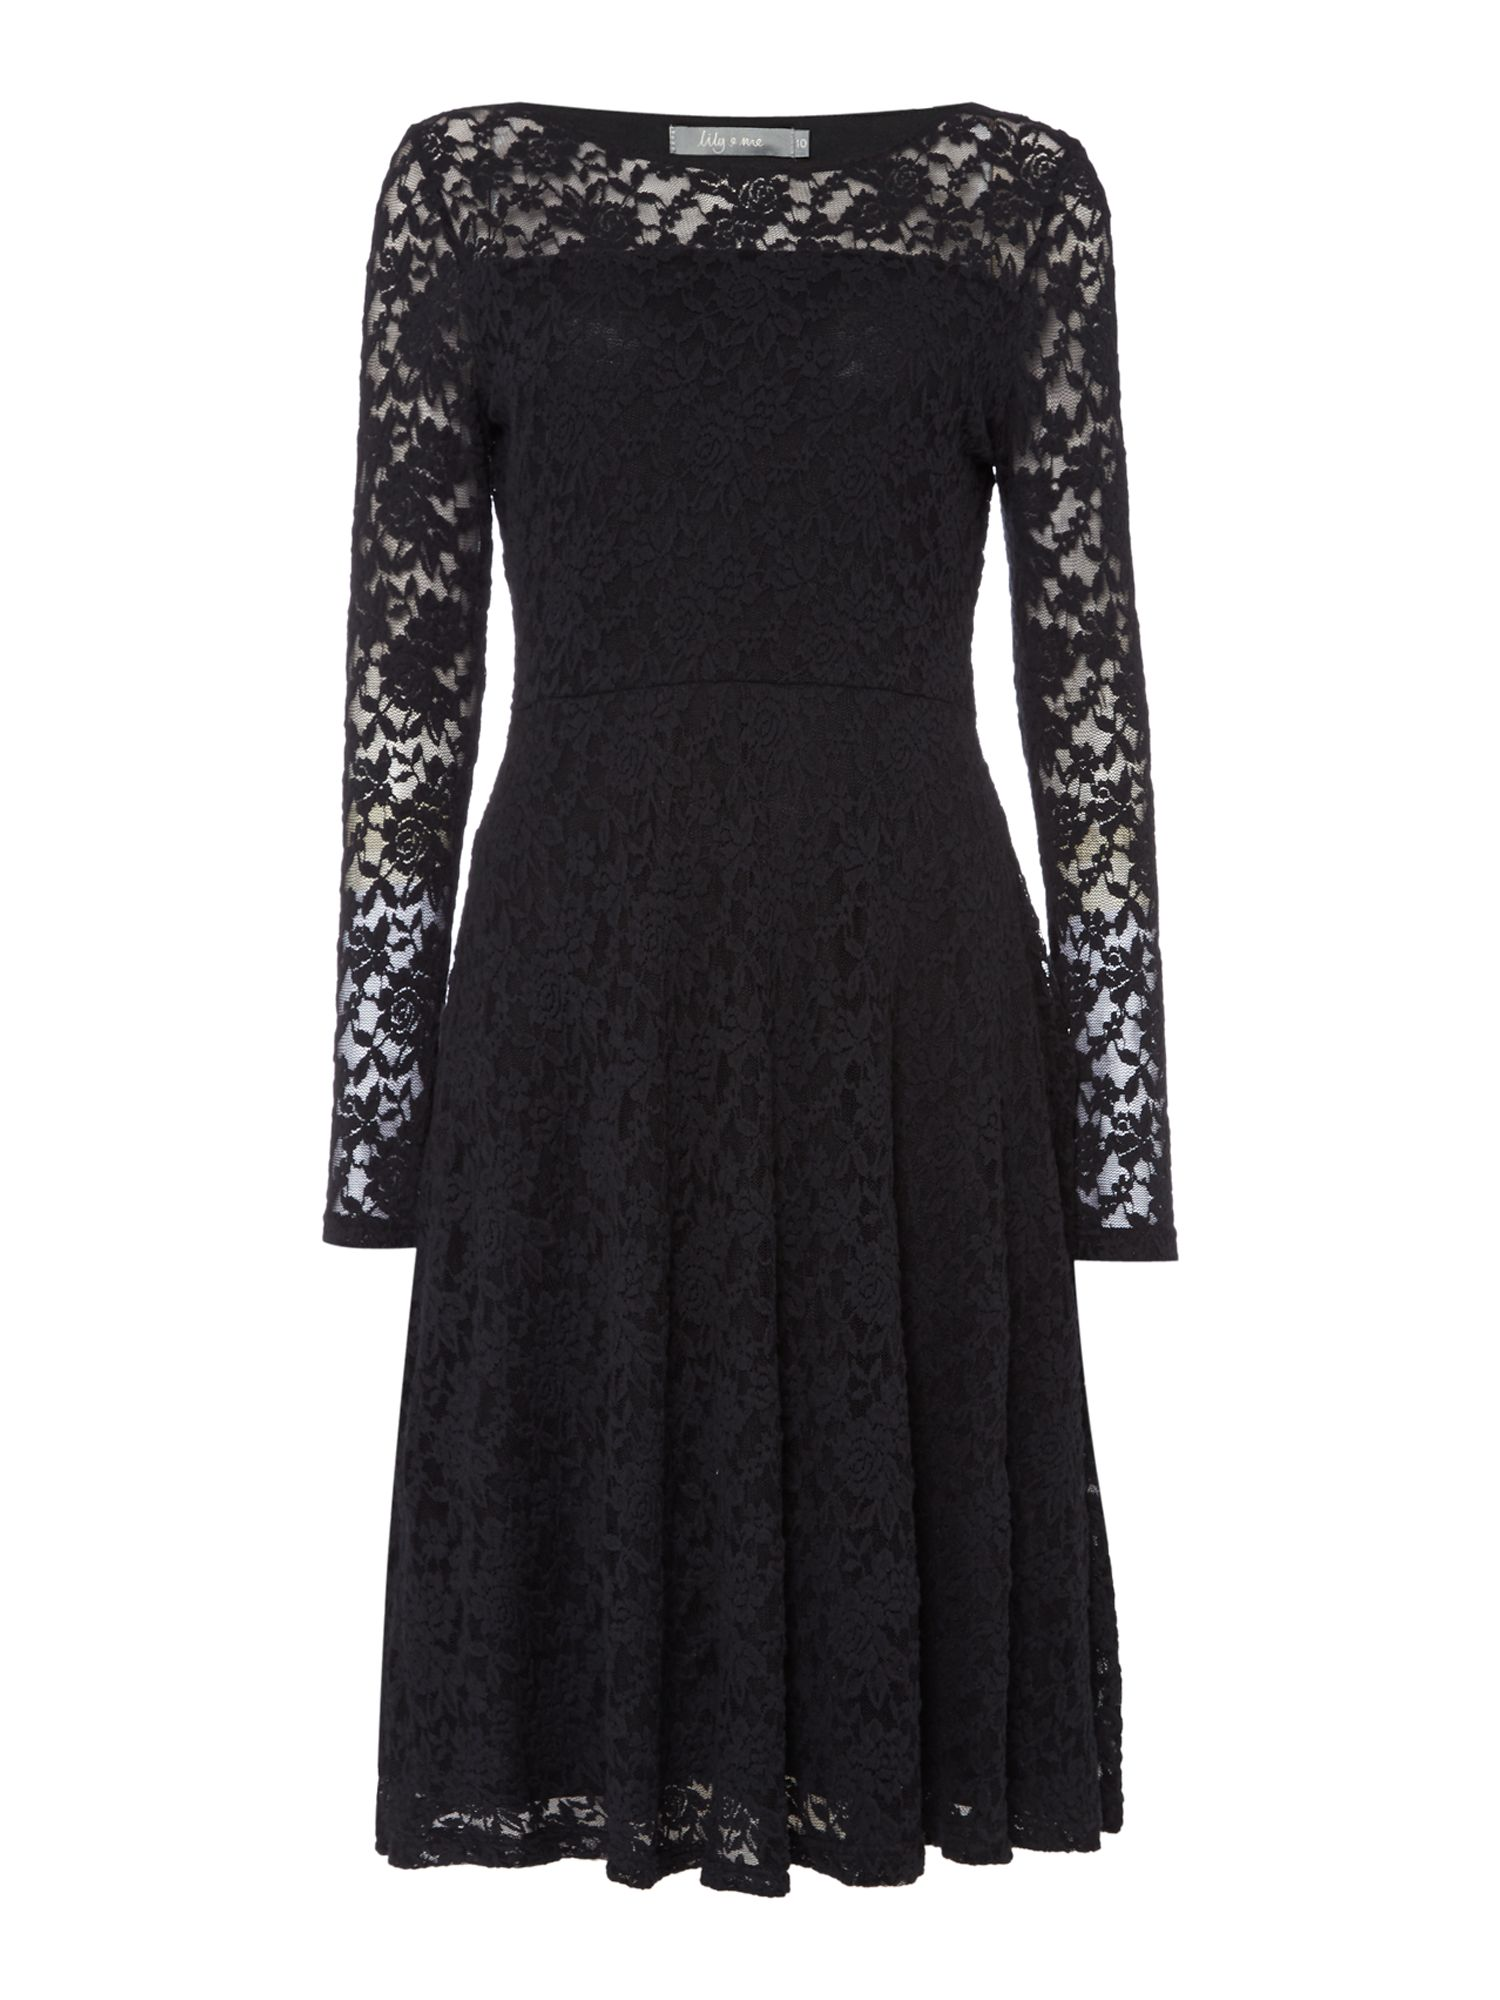 LILY & ME LILY & ME Elegant Embroidered Lace Dress, Black